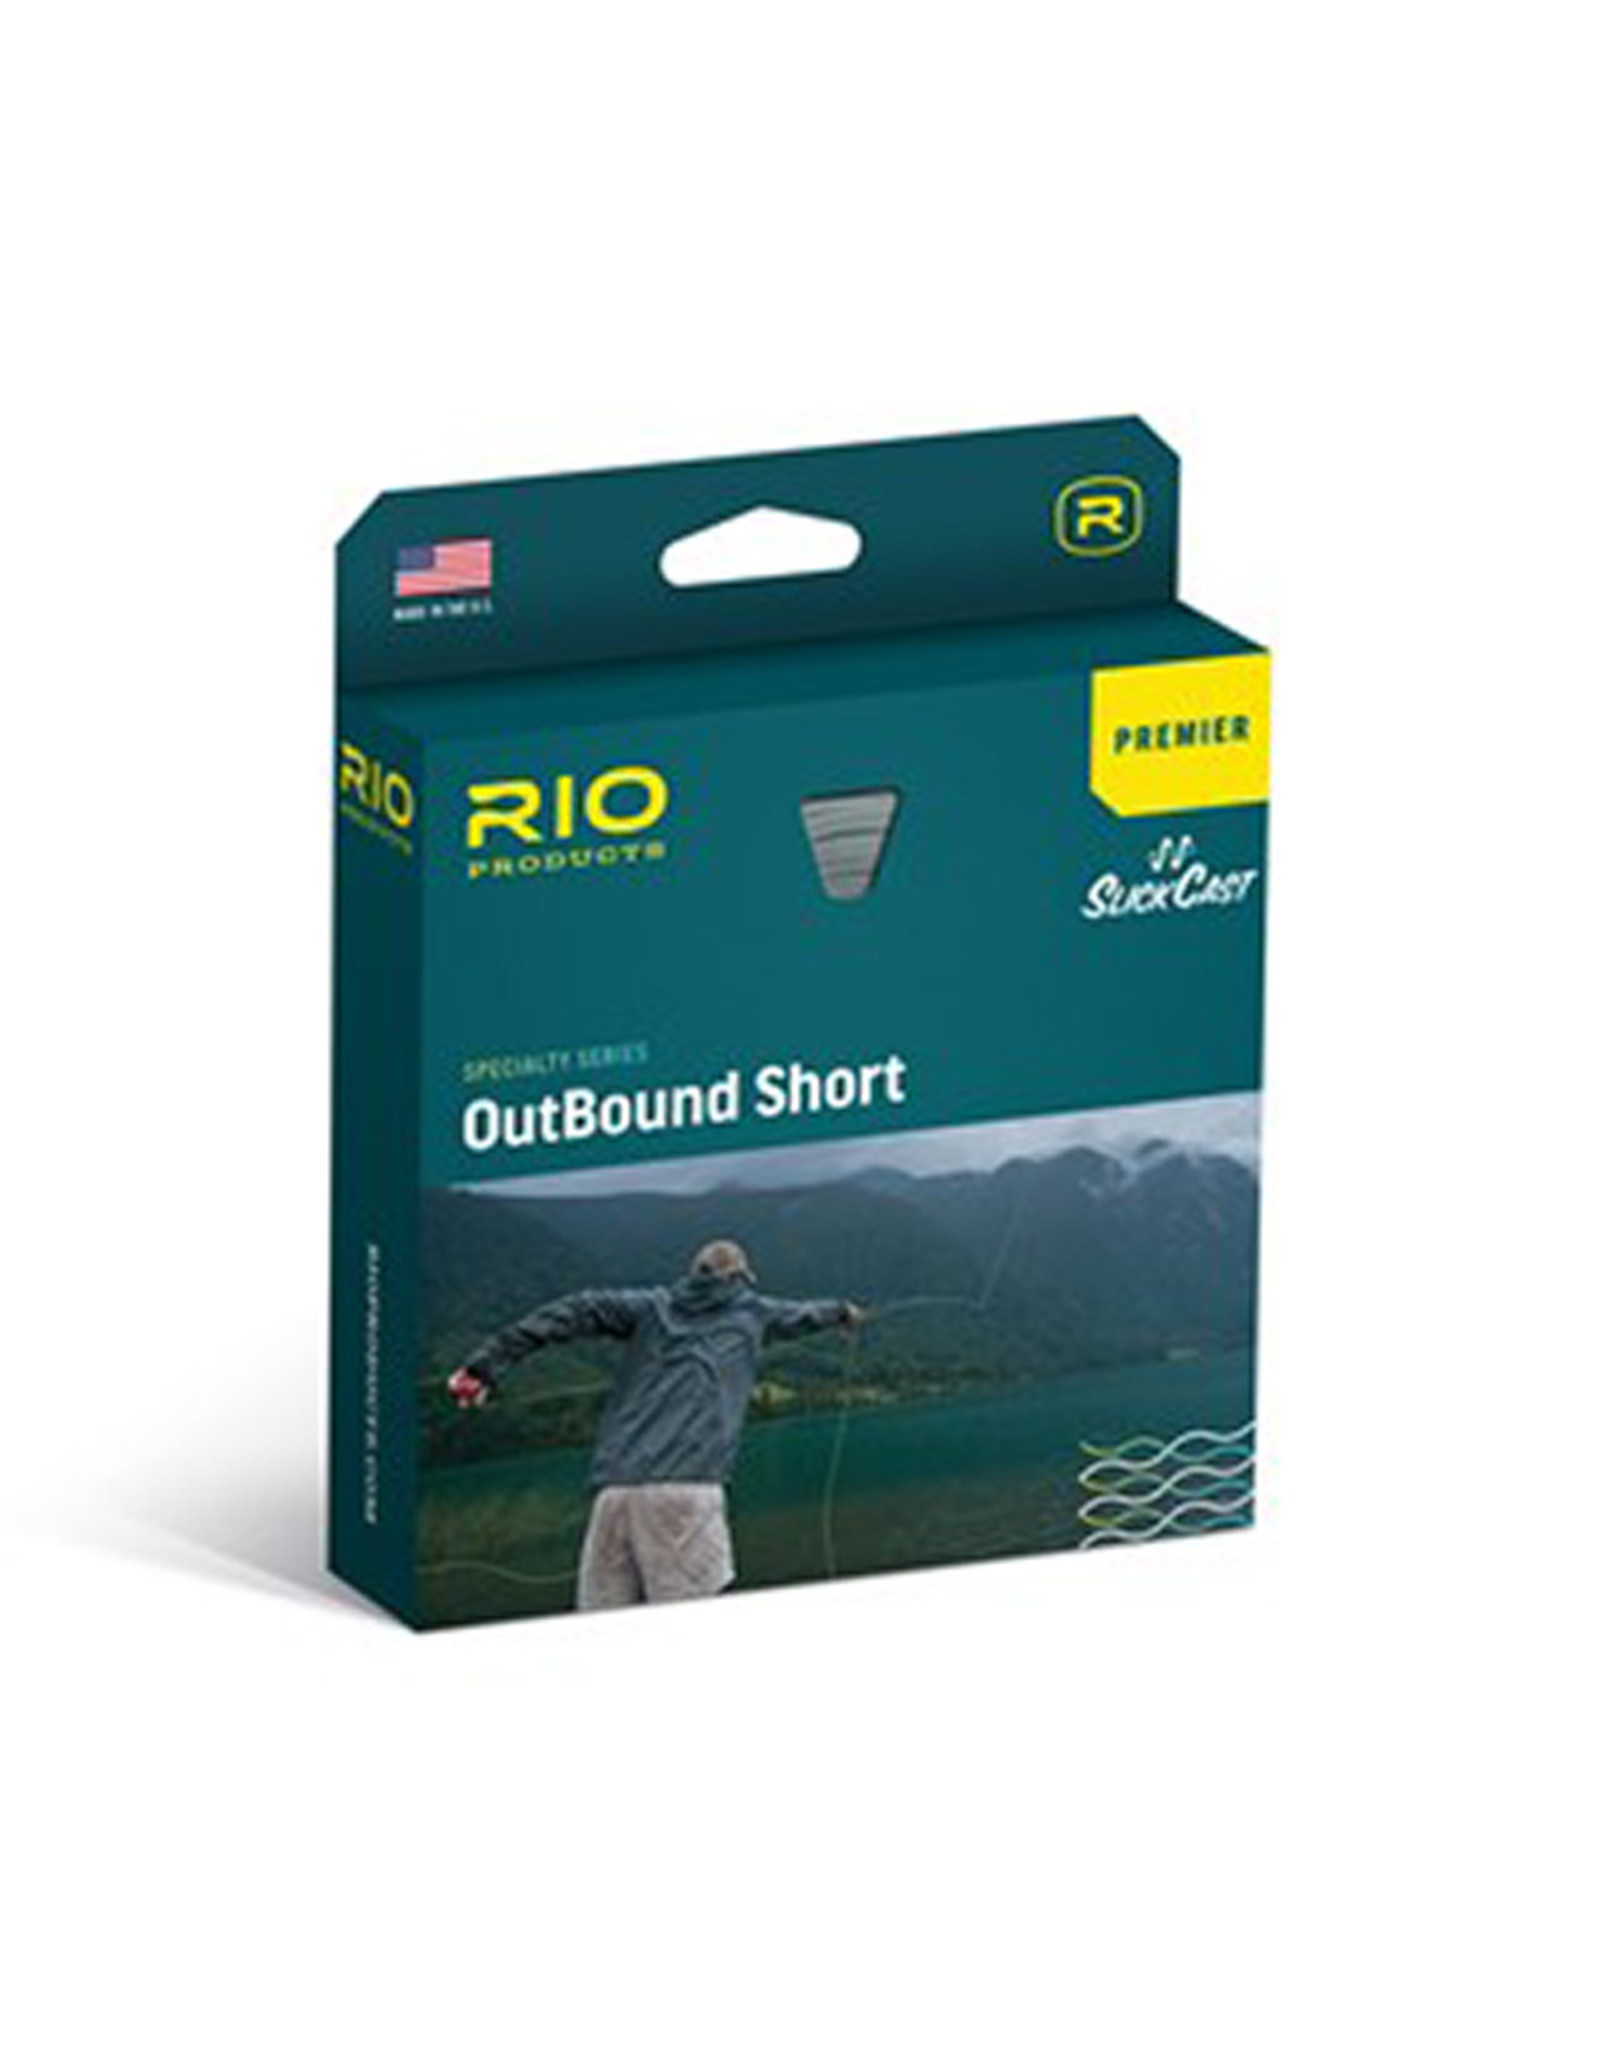 RIO Products Premier OutBound Short F